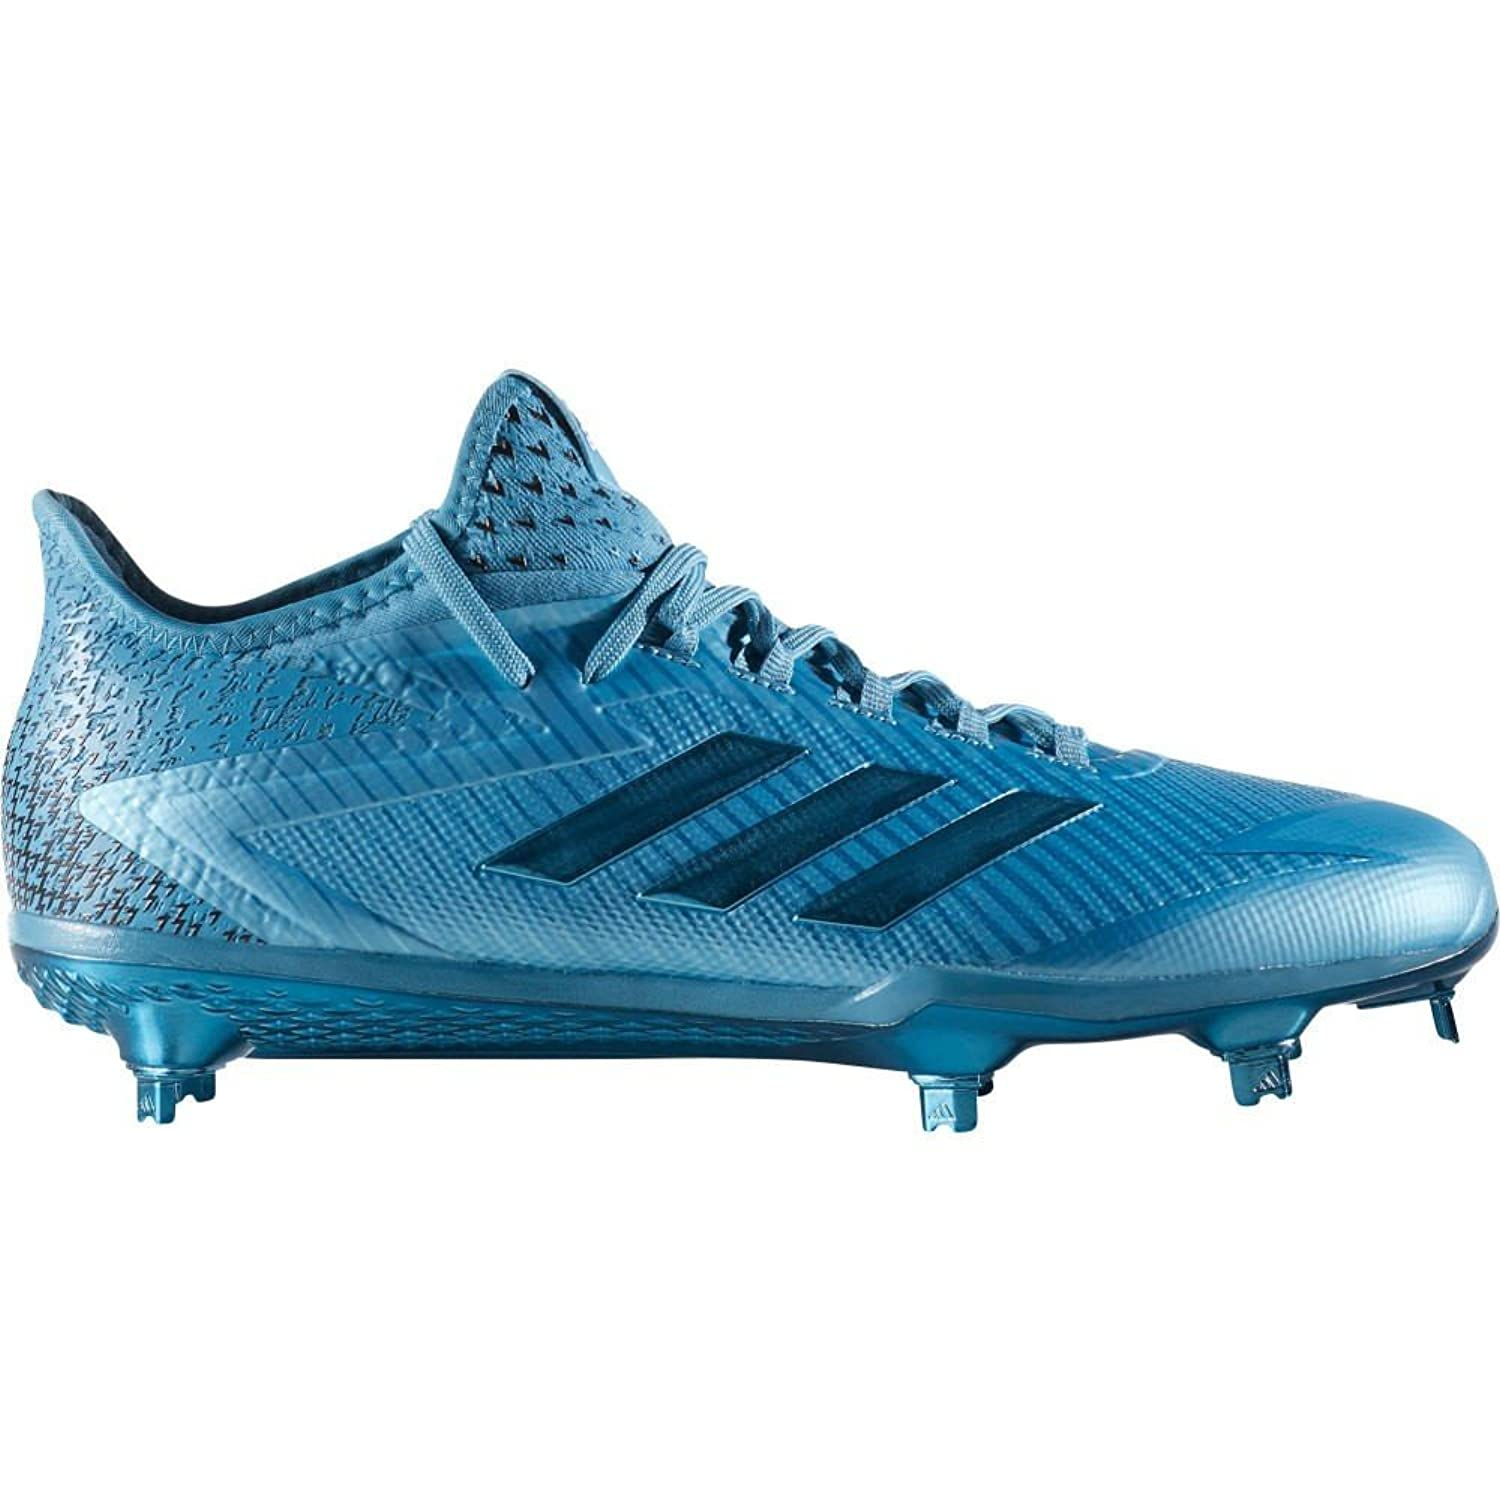 (アディダス) adidas メンズ 野球 シューズ靴 adidas adizero AfterBurner 4 Dip Baseball Cleats [並行輸入品] B077XZQ16R 10.0-Medium